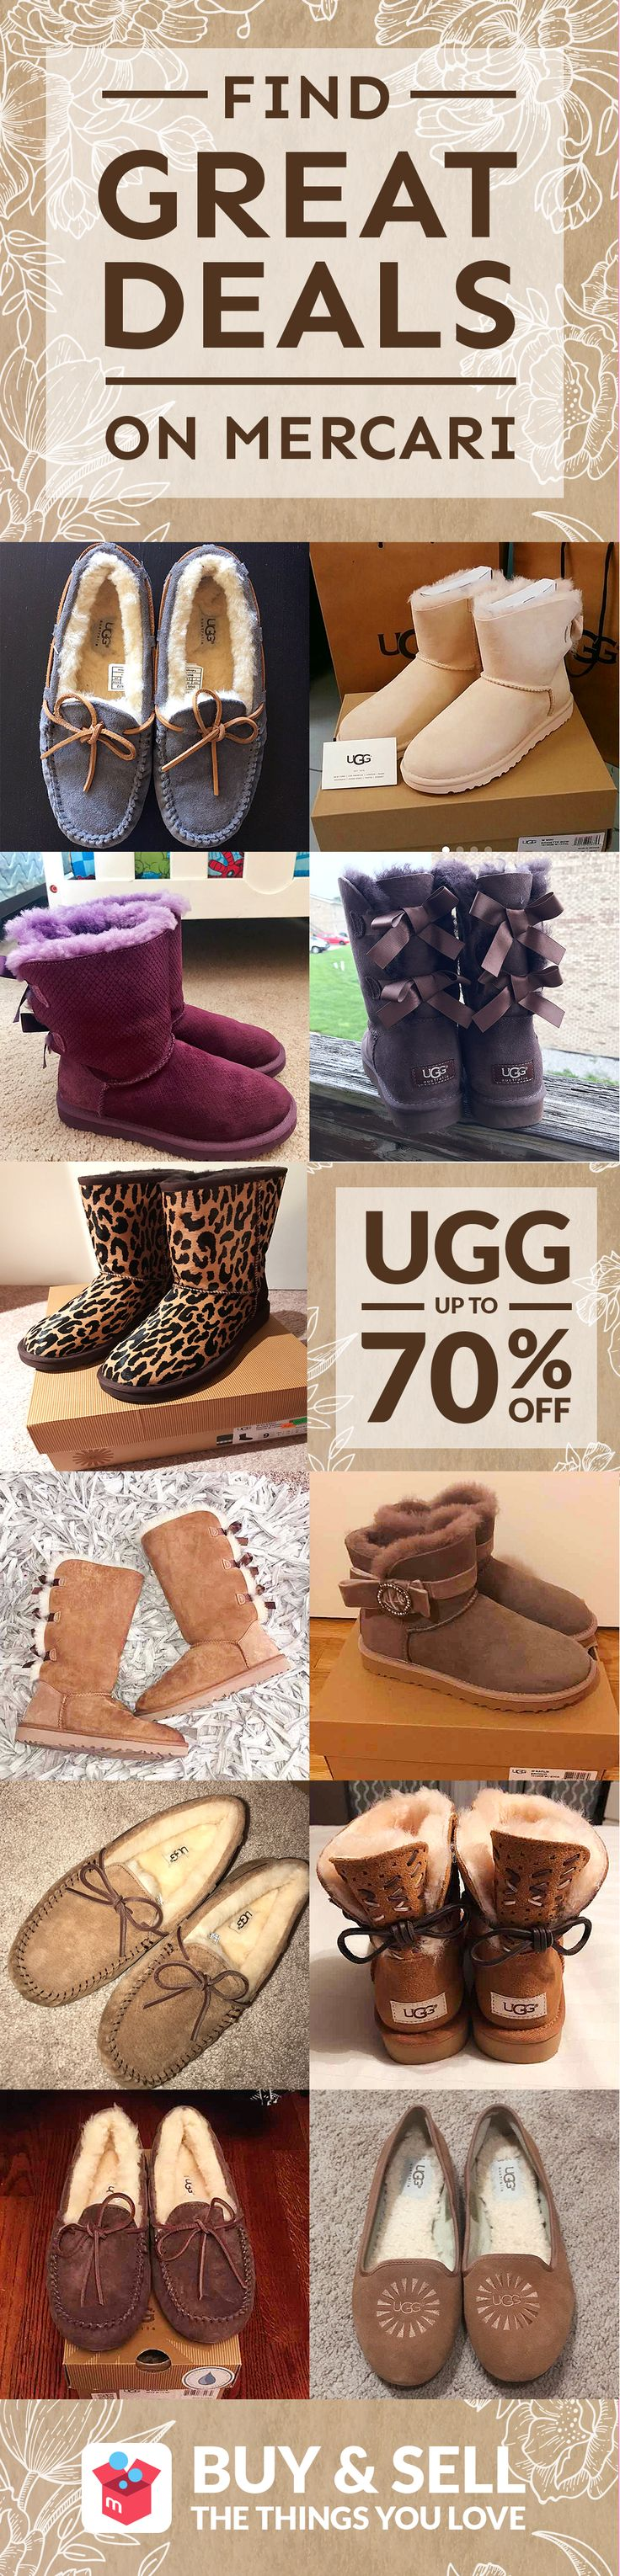 Get your Ugg boots at low prices with Mercari app! Buy and sell new/used items like clothing, brand-name bags, shoes, cosmetics, jewelry, electronics, and more. Turn your old items into cash and find new treasures as well–straight from your mobile phone! Shop confidently with our Buyer Protection Guarantee. What are you waiting for? Start using Mercari today!